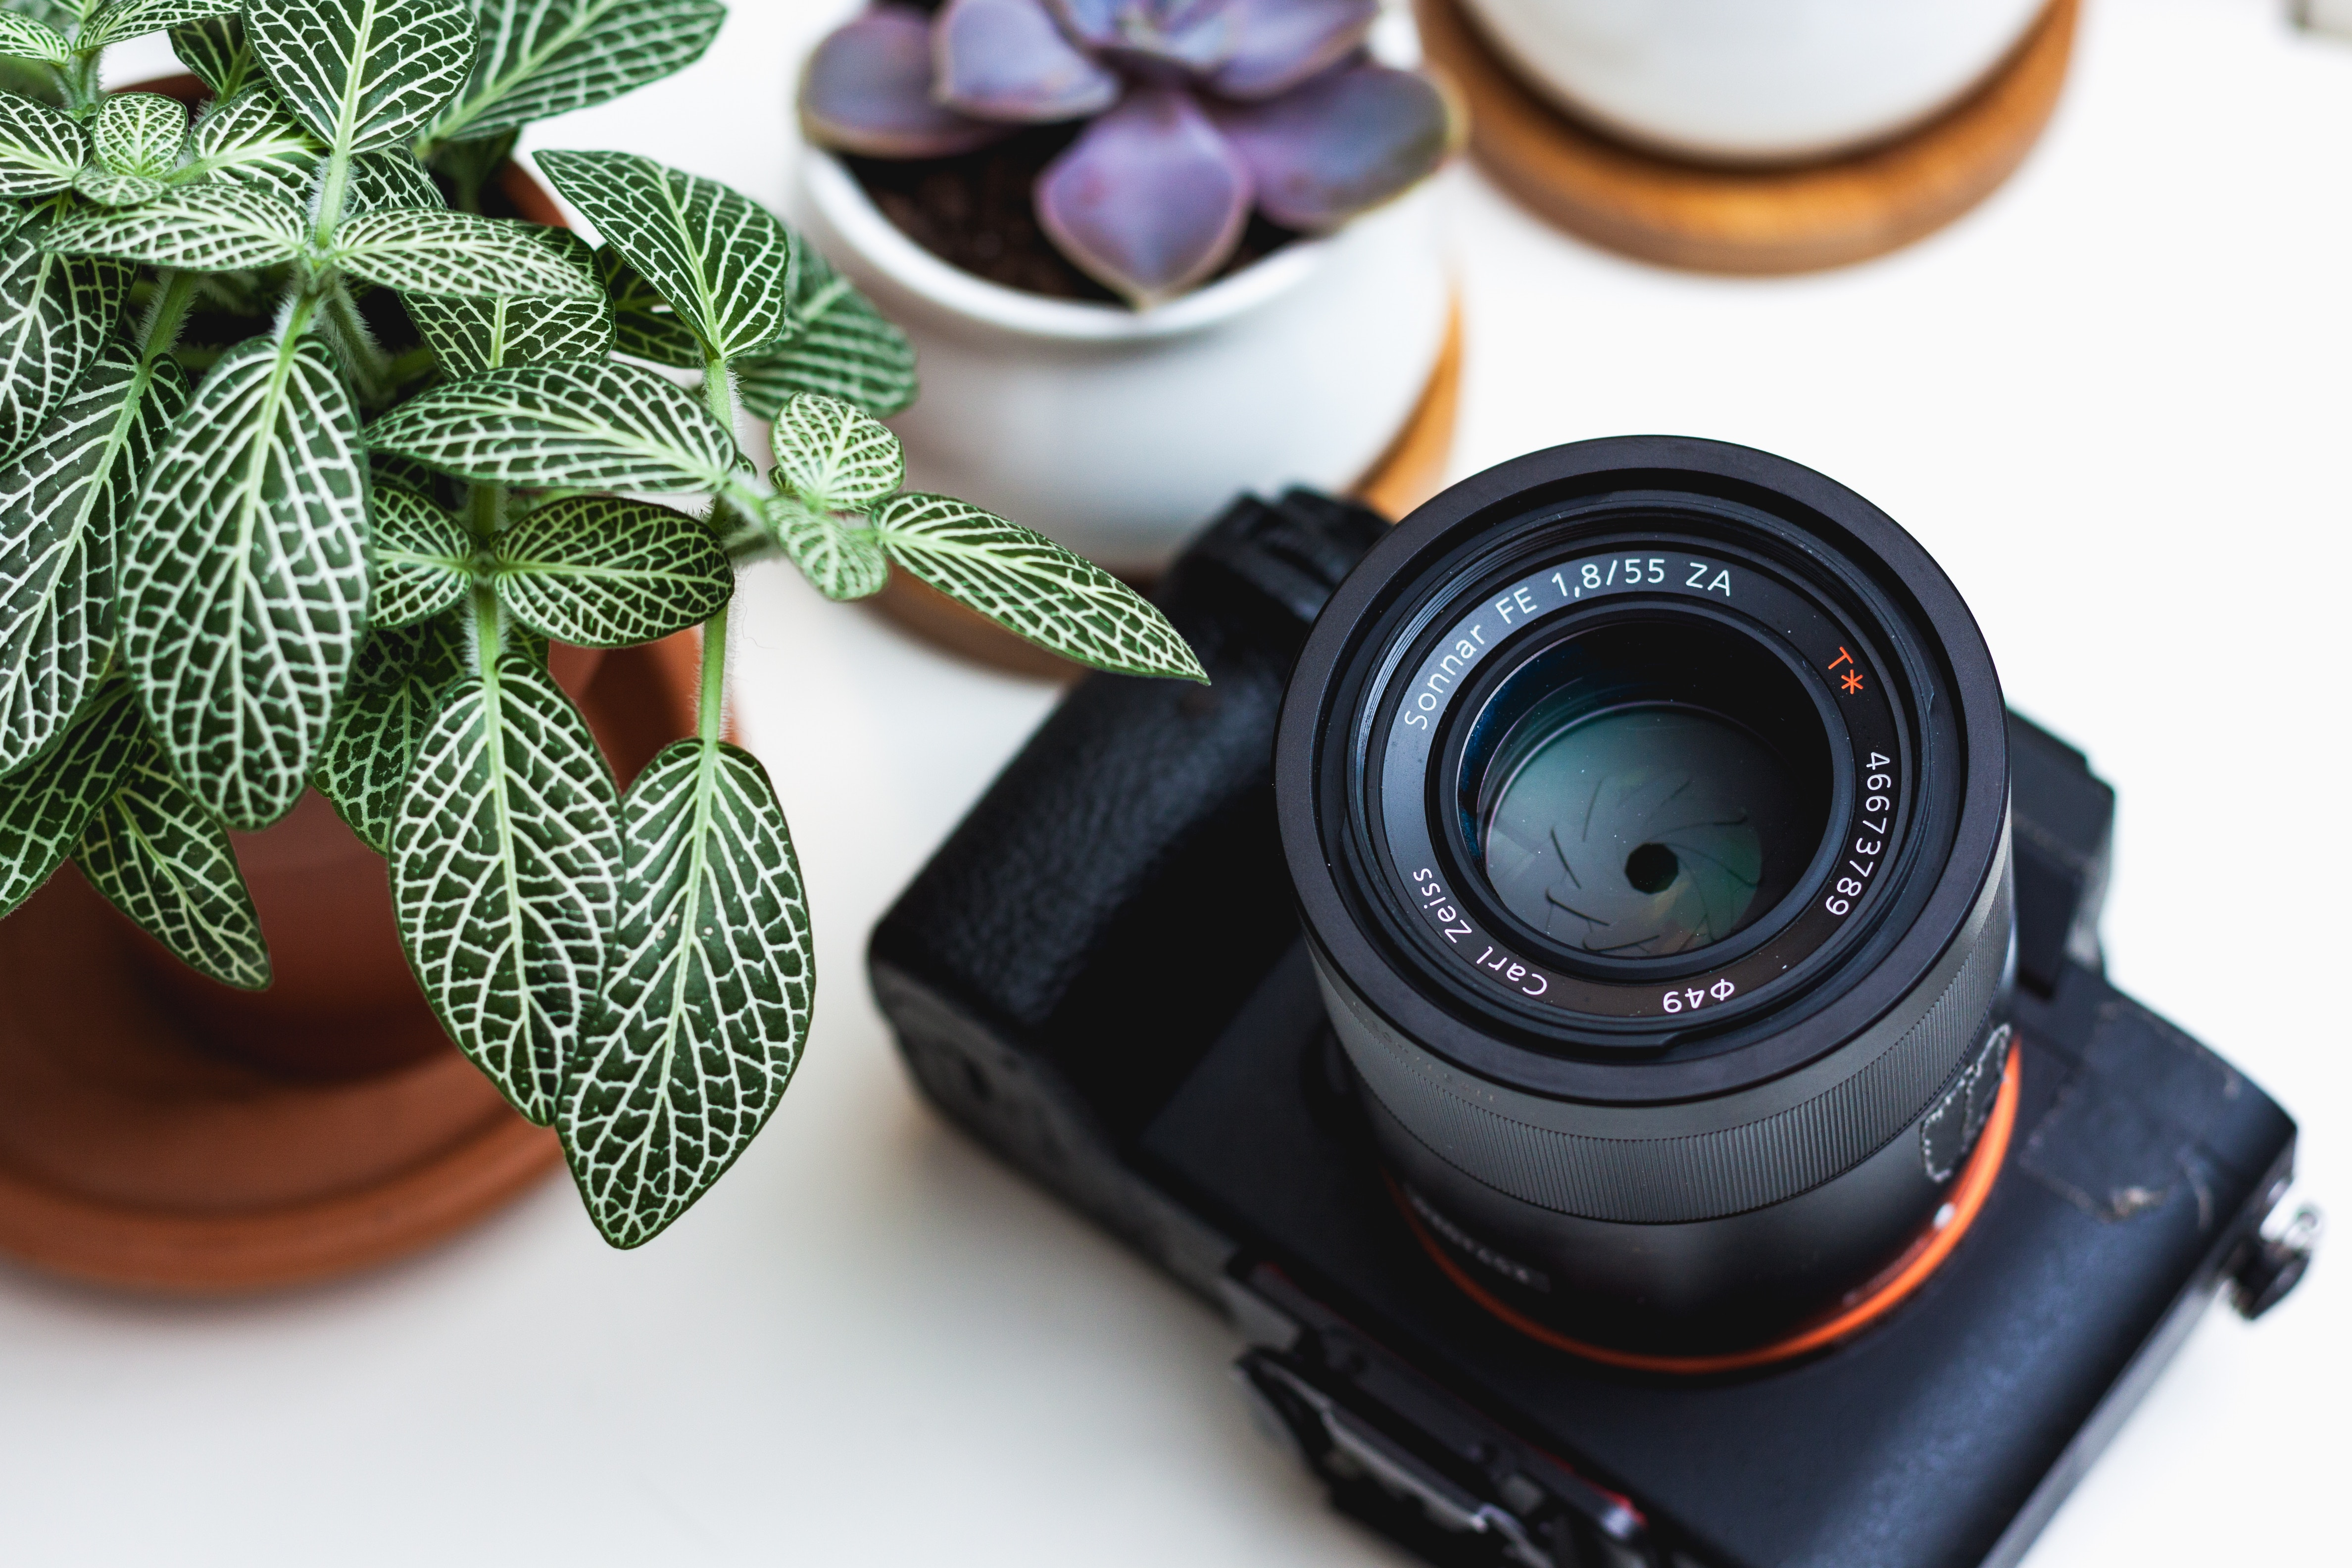 Product Photography Tips and Tricks: 9 Photo Tips You Must Do